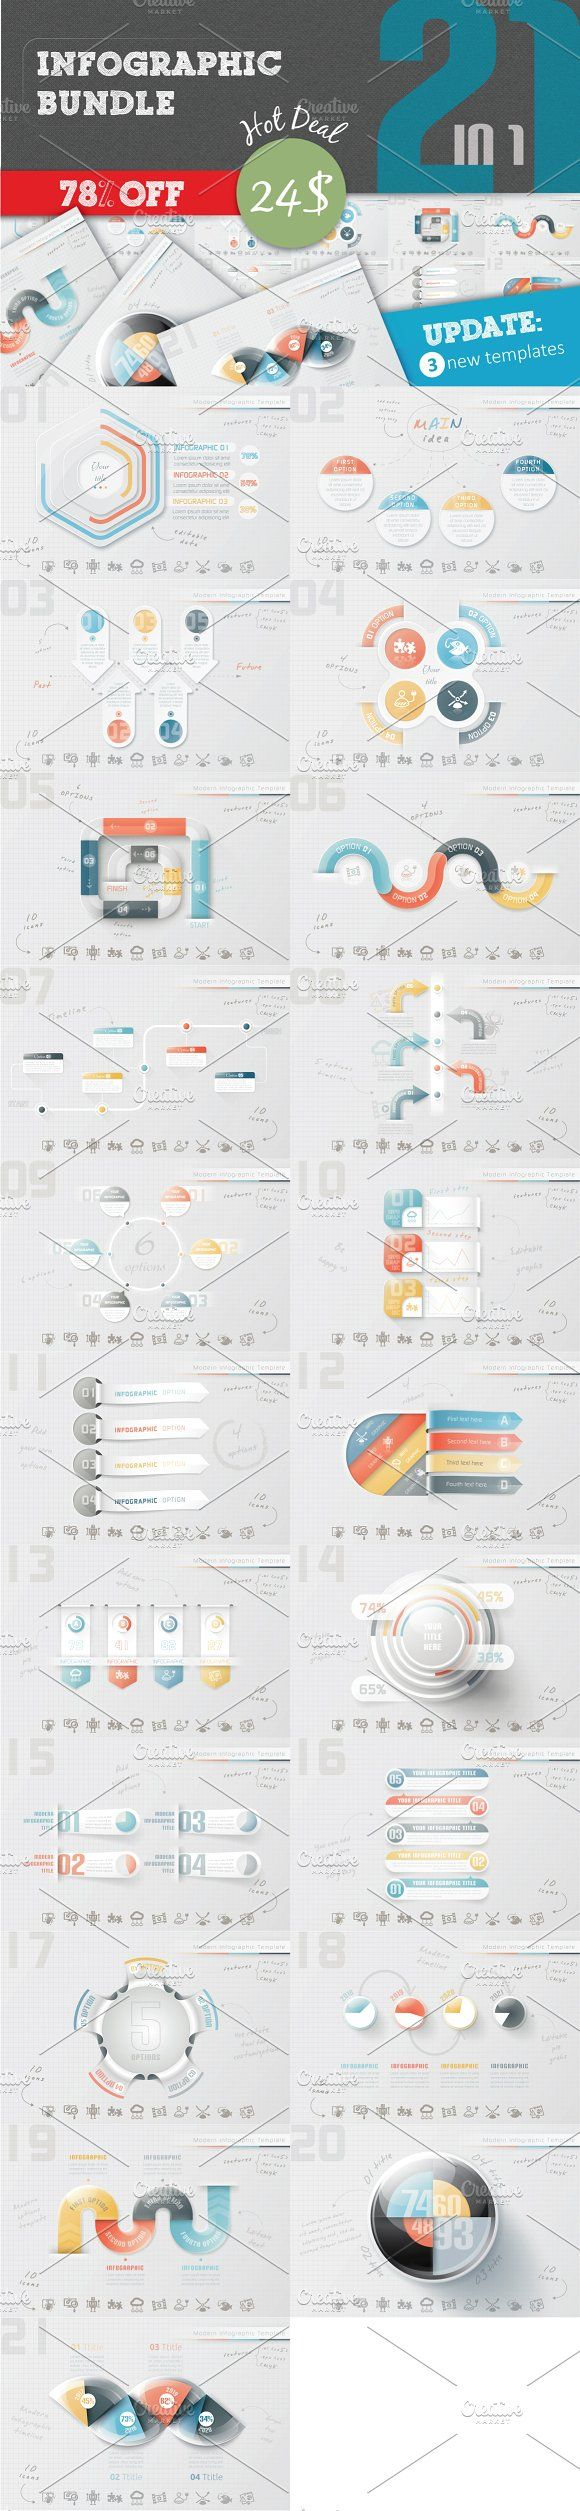 @newkoko2020 78% OFF Infographic Bundle (21 in 1) by Infographic Paradise on @creativemarket #infographic #infographics #bundle #download #design #template #set #presentation #vector #buy #graph #discount